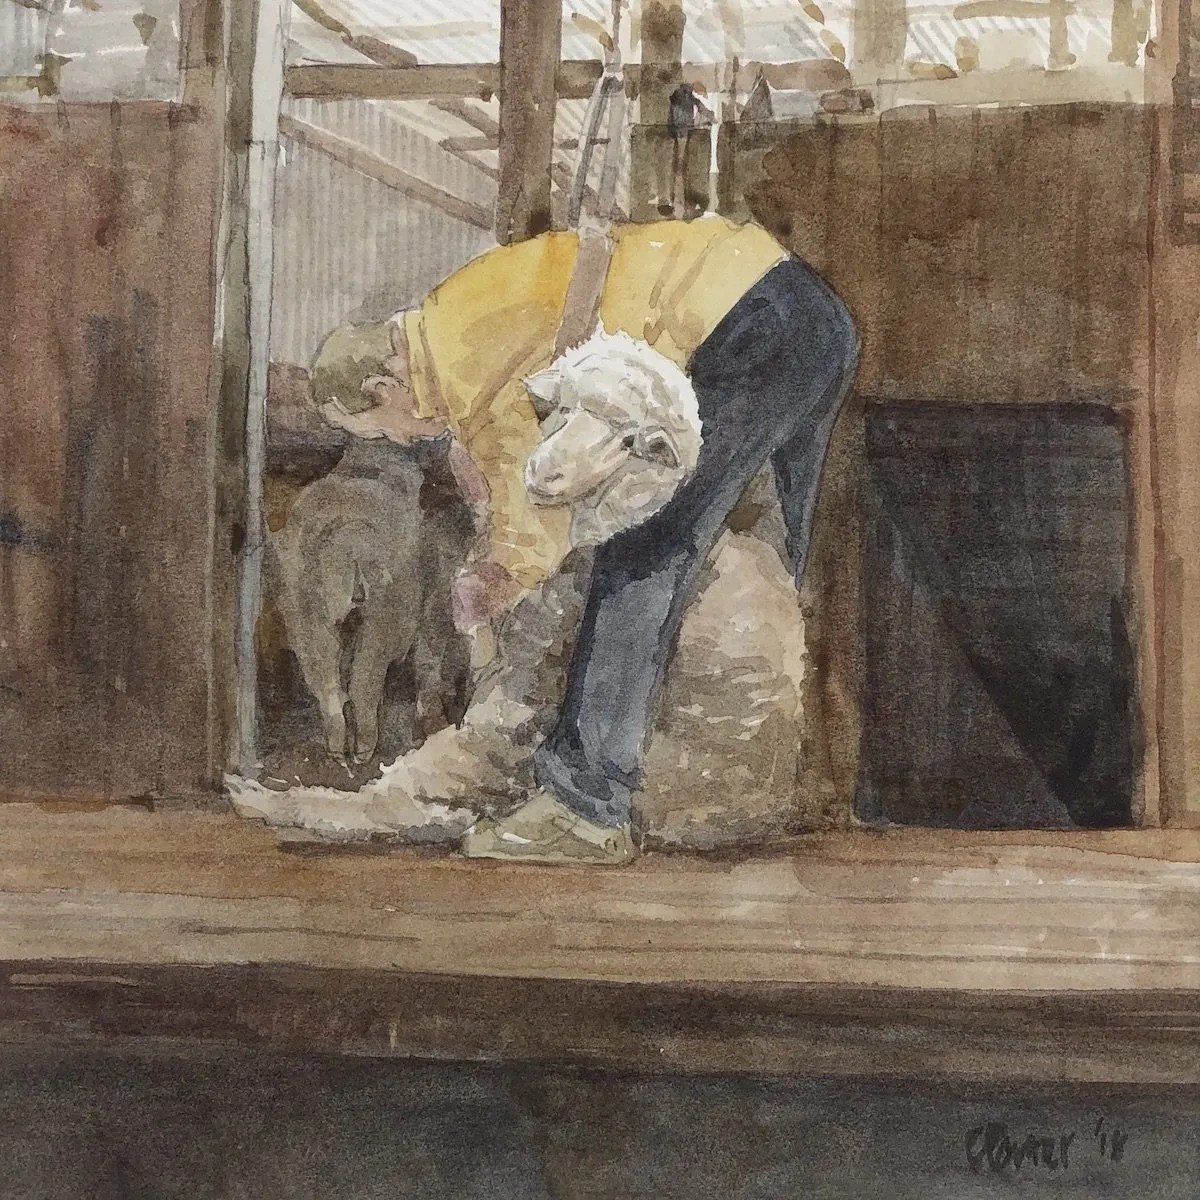 Watercolour painting by Christine Porter showing a shearer in a yellow shirt and blue sheaers' pants shearing a large ram who's face is turned to us.